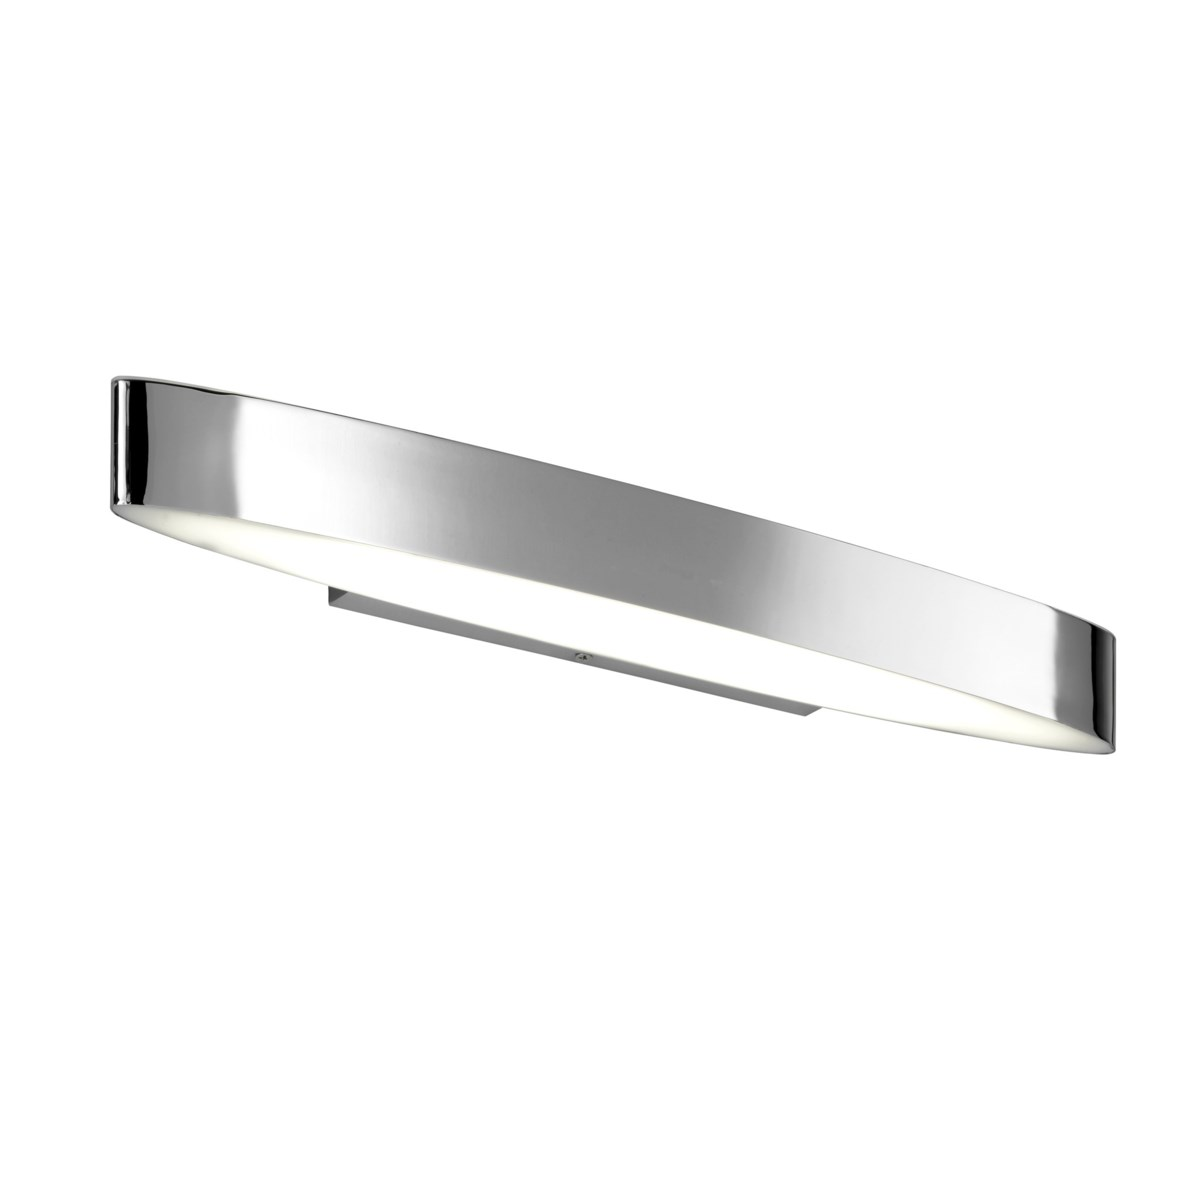 H2O Bar Wall Sconce in Chrome